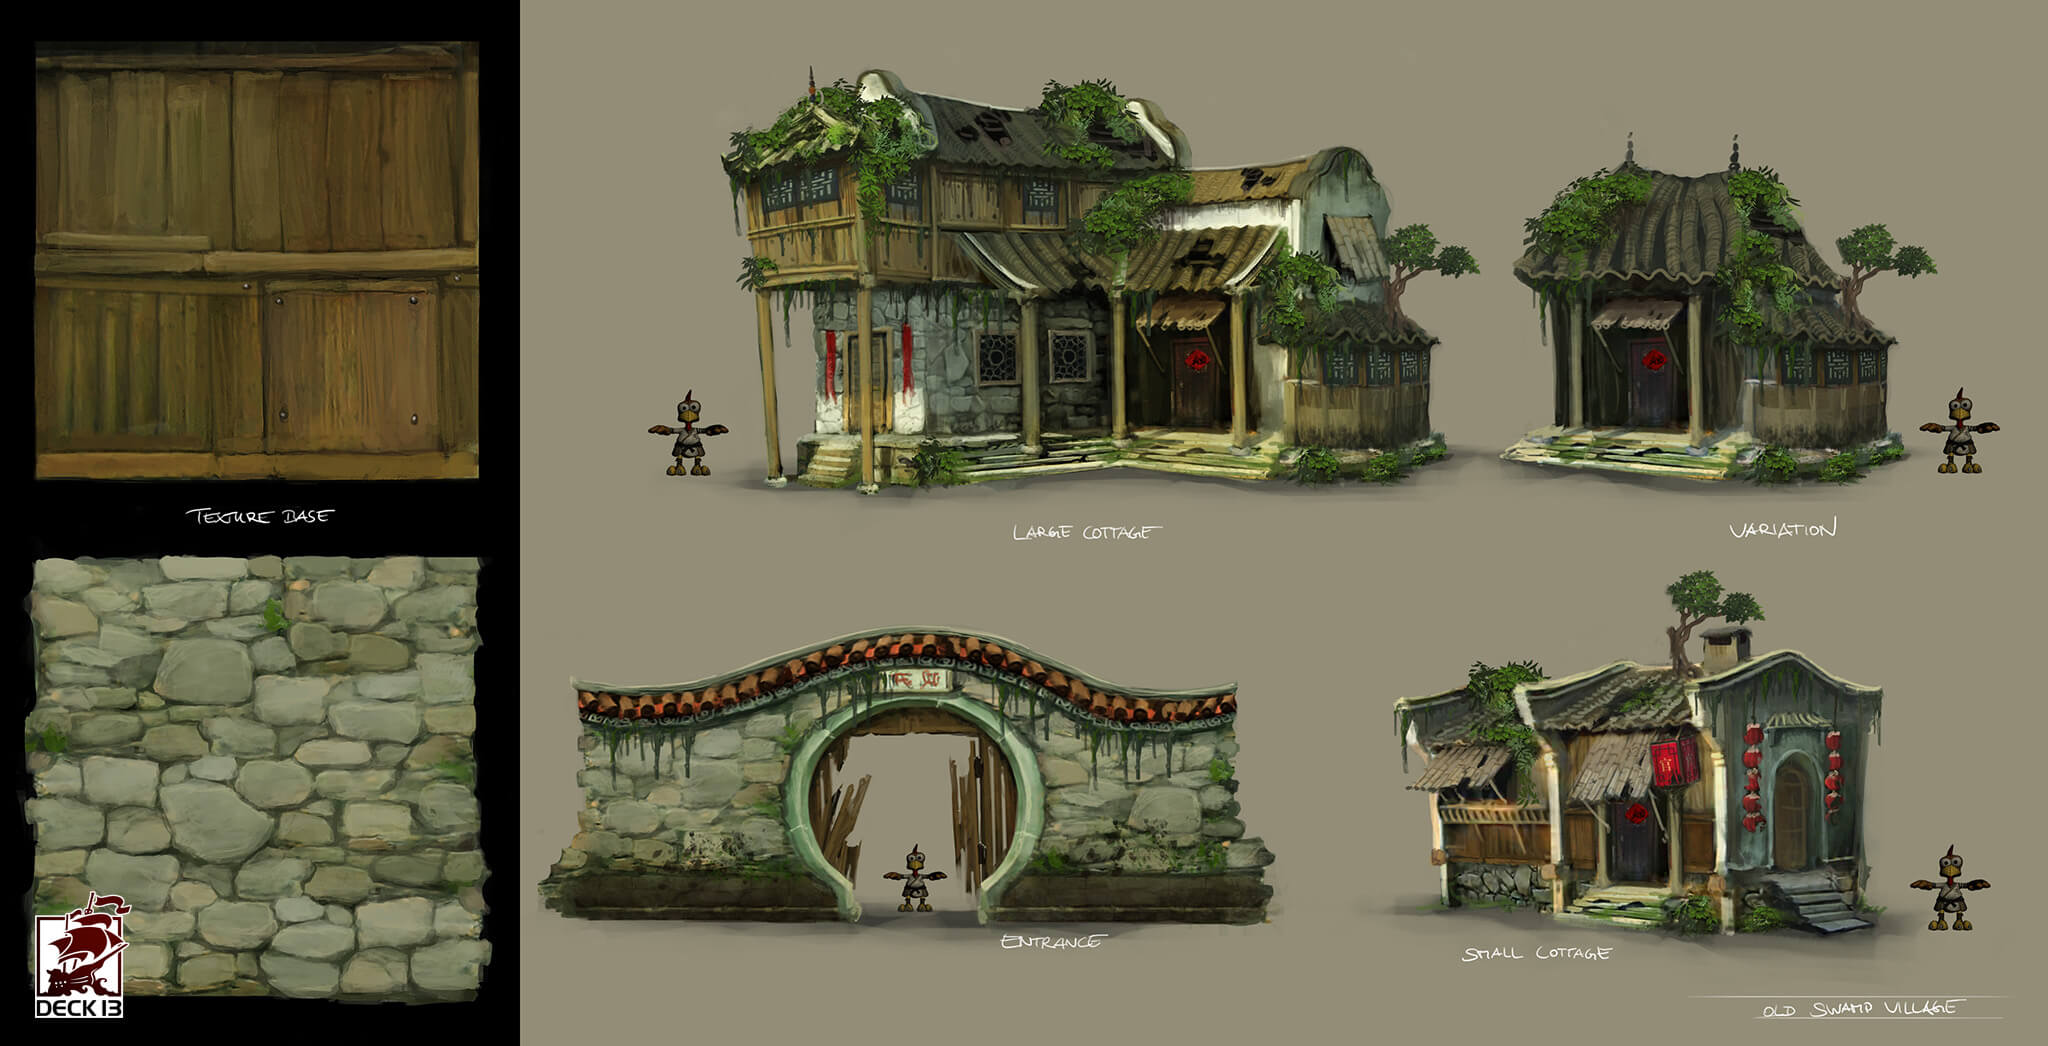 tiger-and-chicken-deck13-felix-haas-concept-artist-swamp_architecture